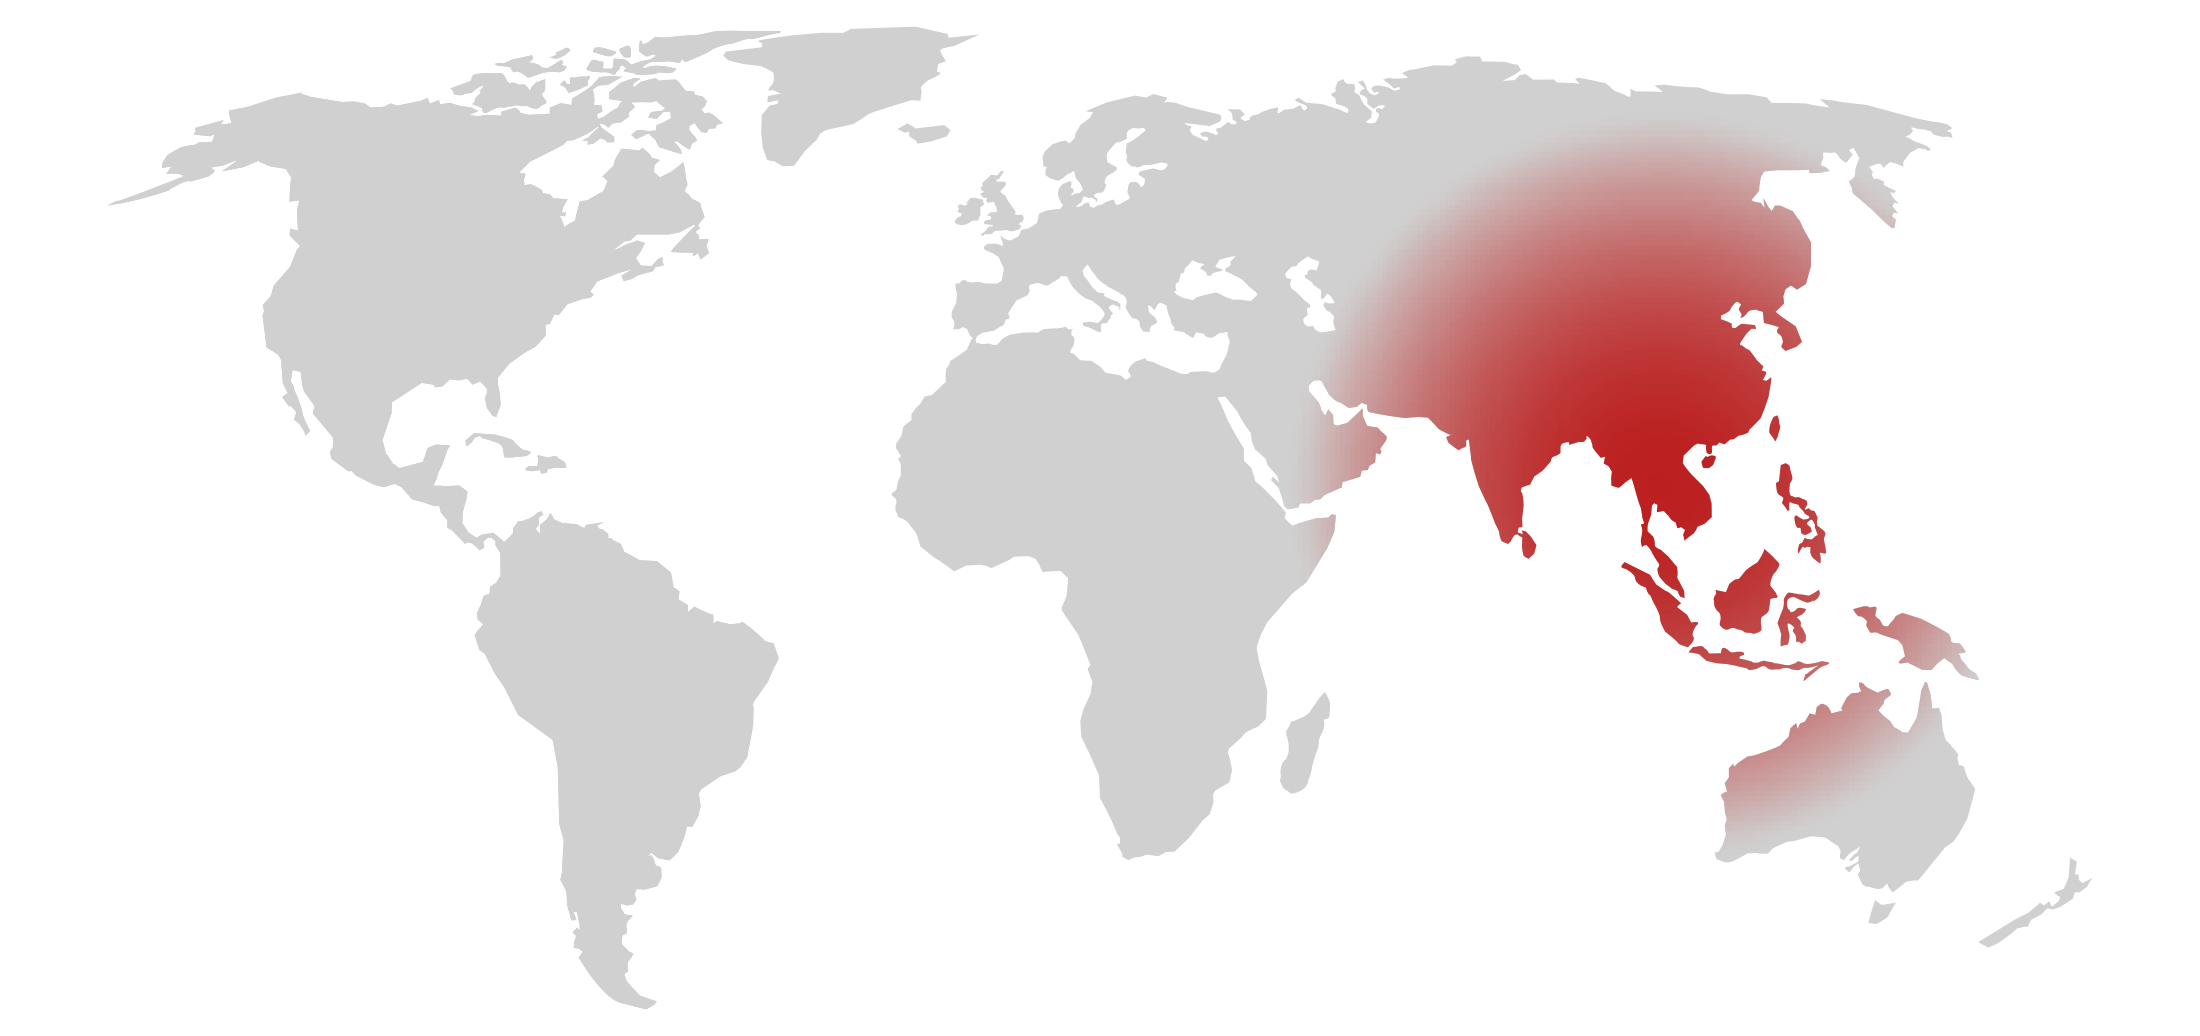 Map showing the area of Asia